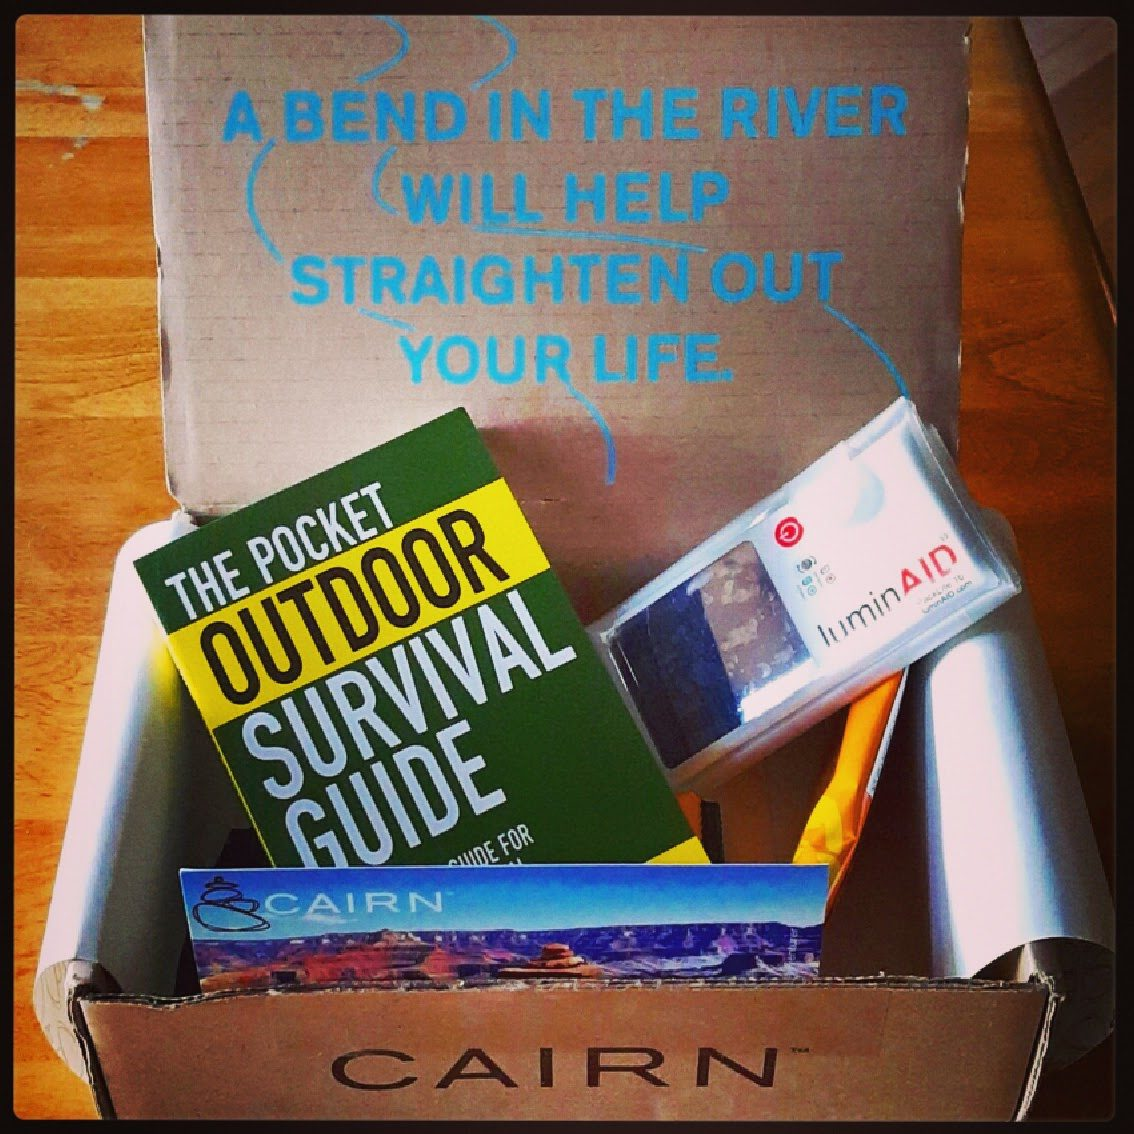 Cairn Box review – June 2017